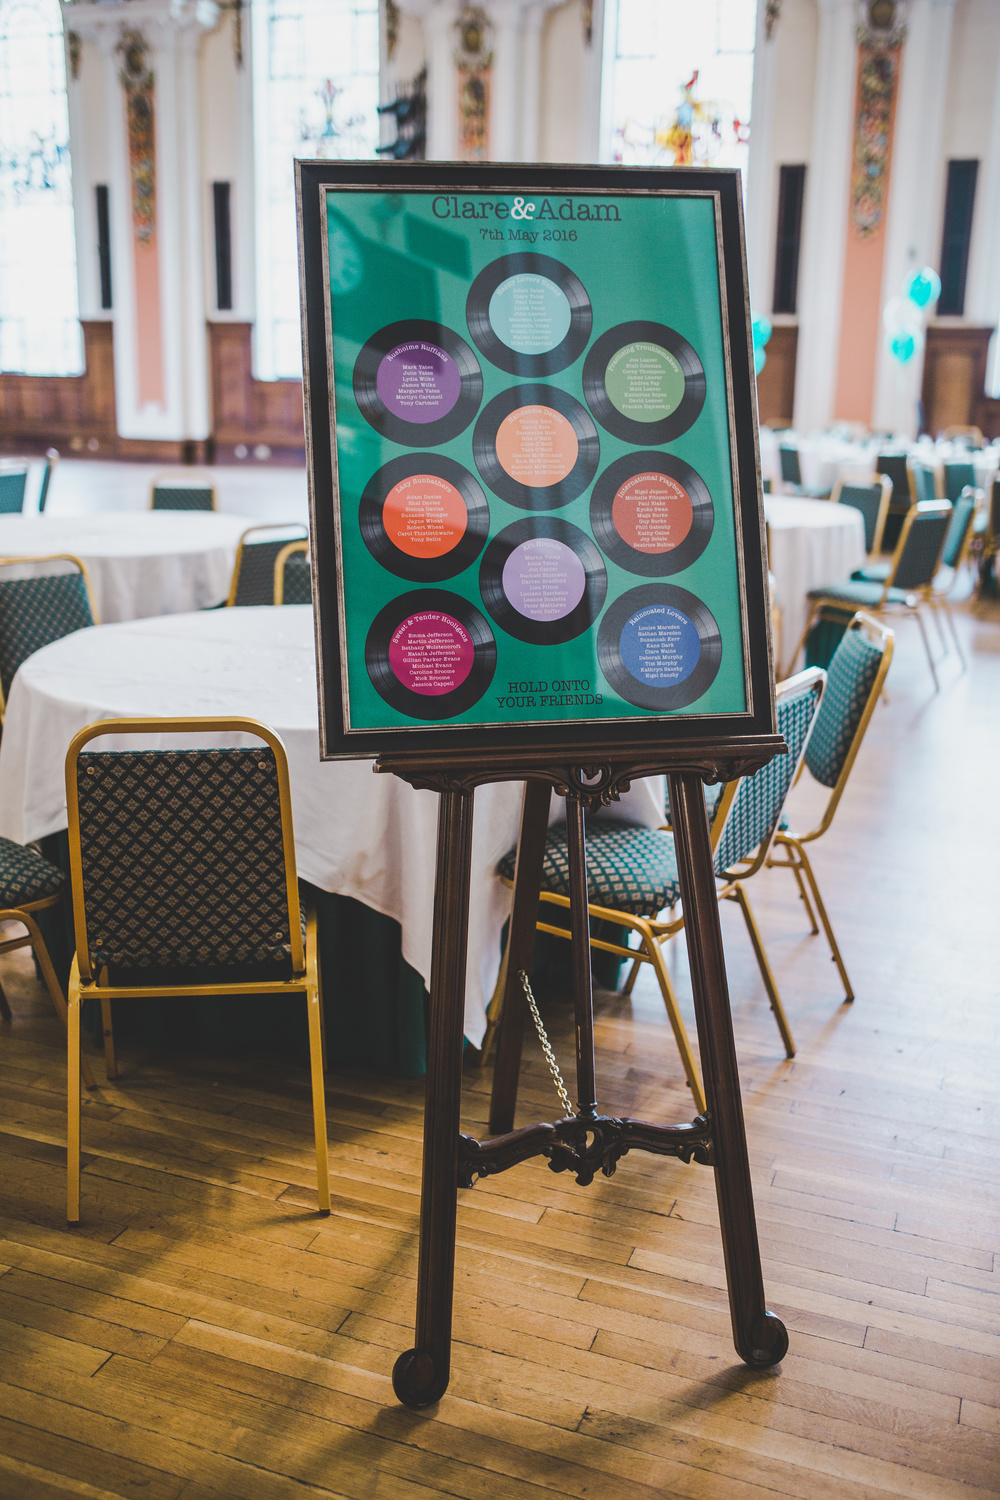 The wedding seating chart at Stockport Town Hall Wedding